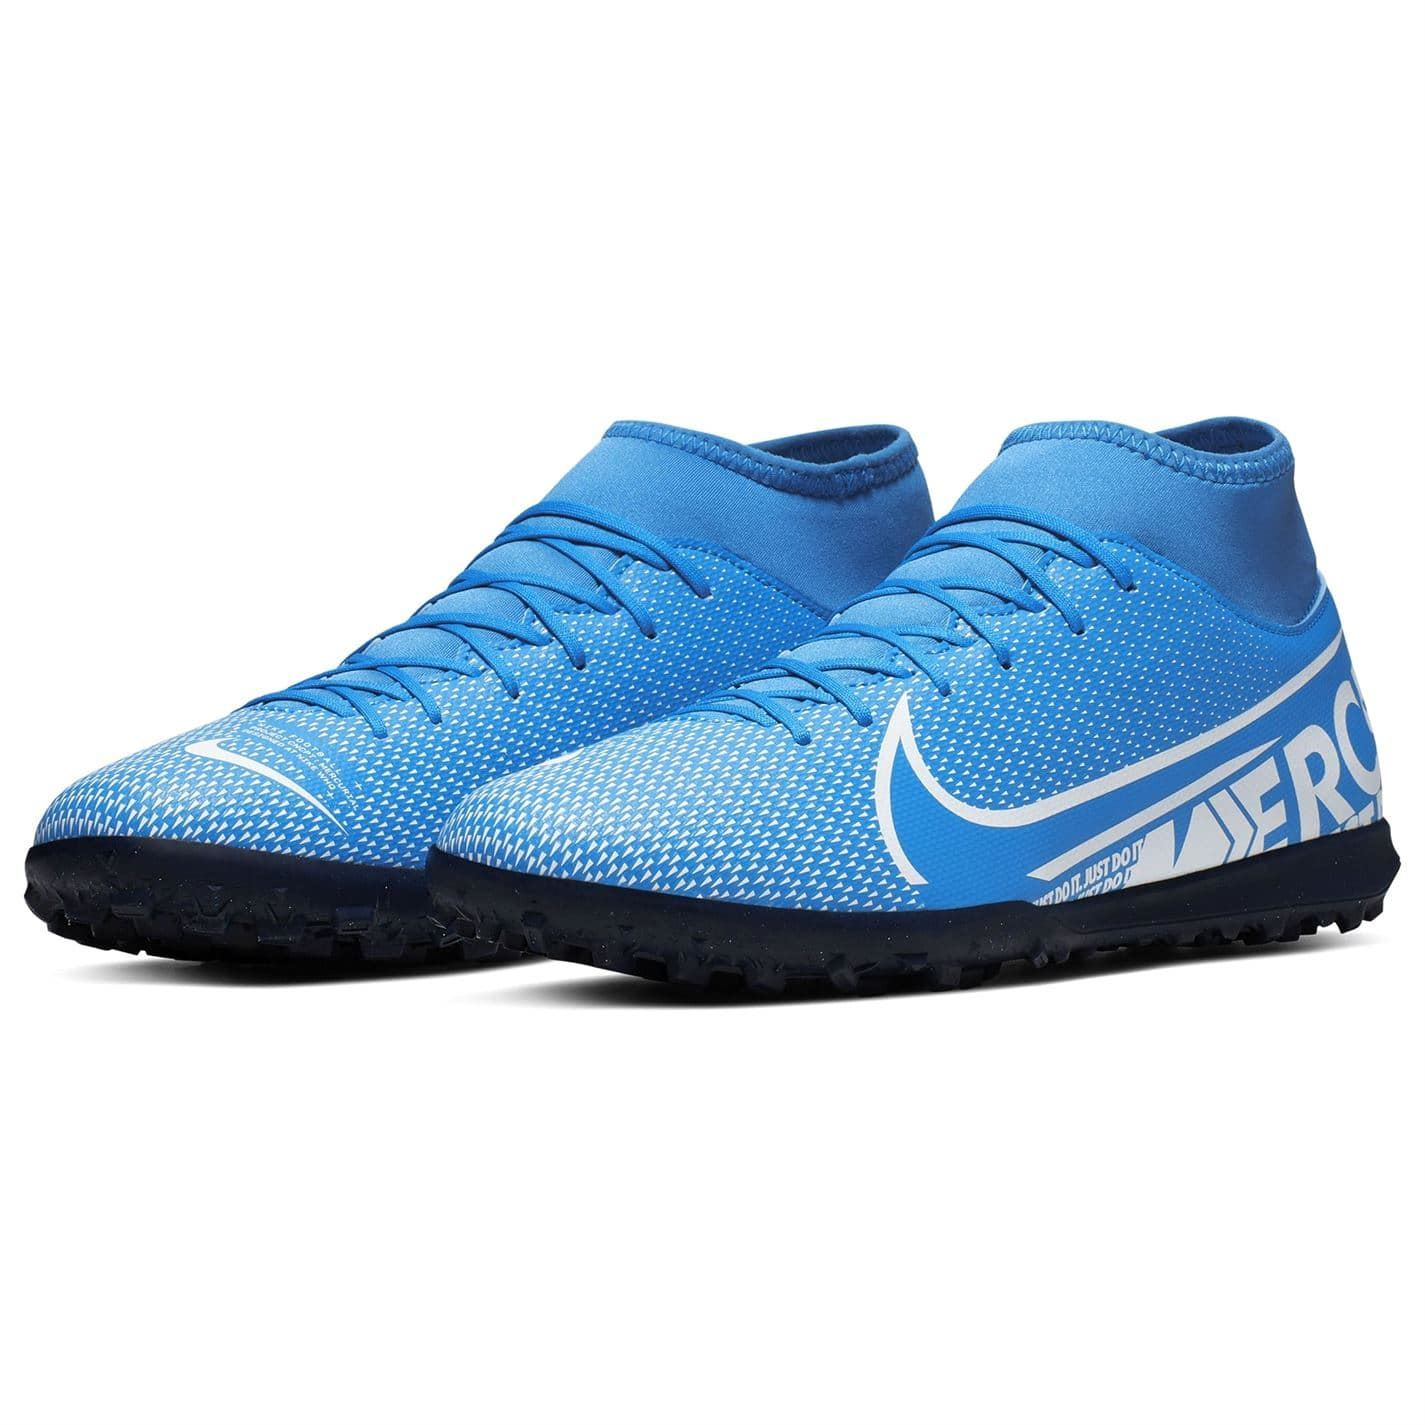 astro turf football boots outlet 4d7ef